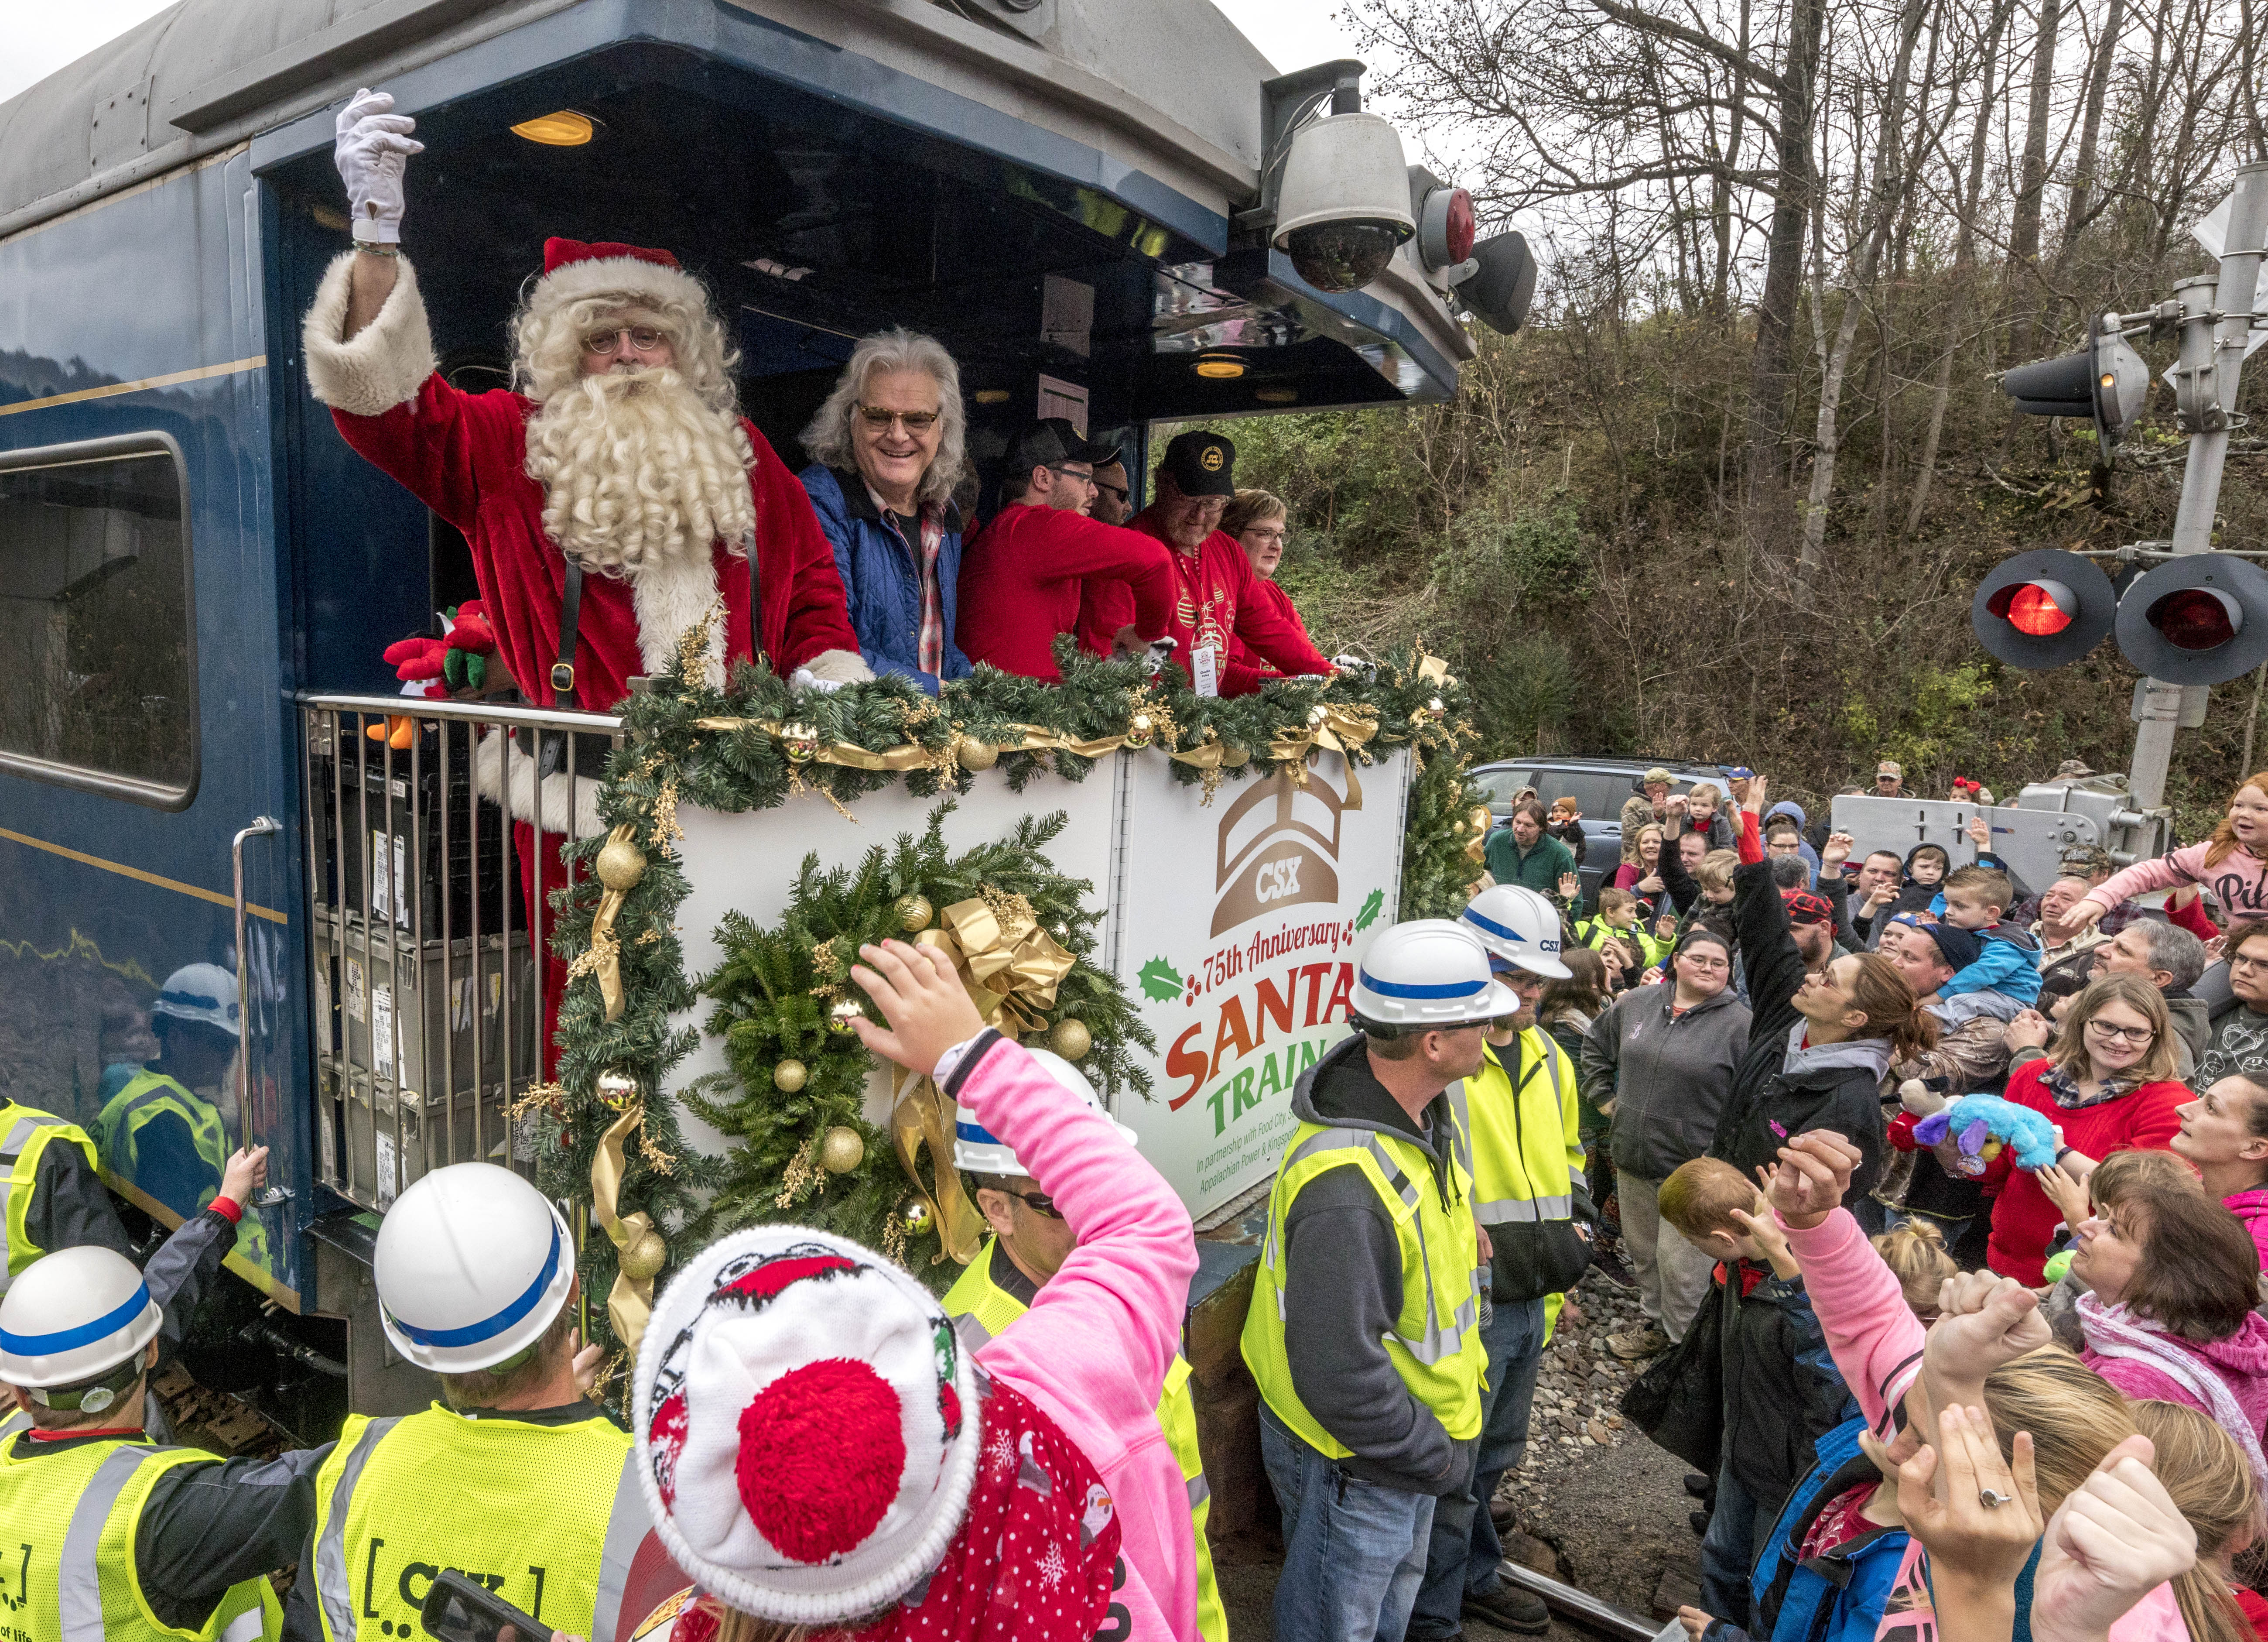 Ricky Skaggs takes part in 75th Annual run of The Santa Train